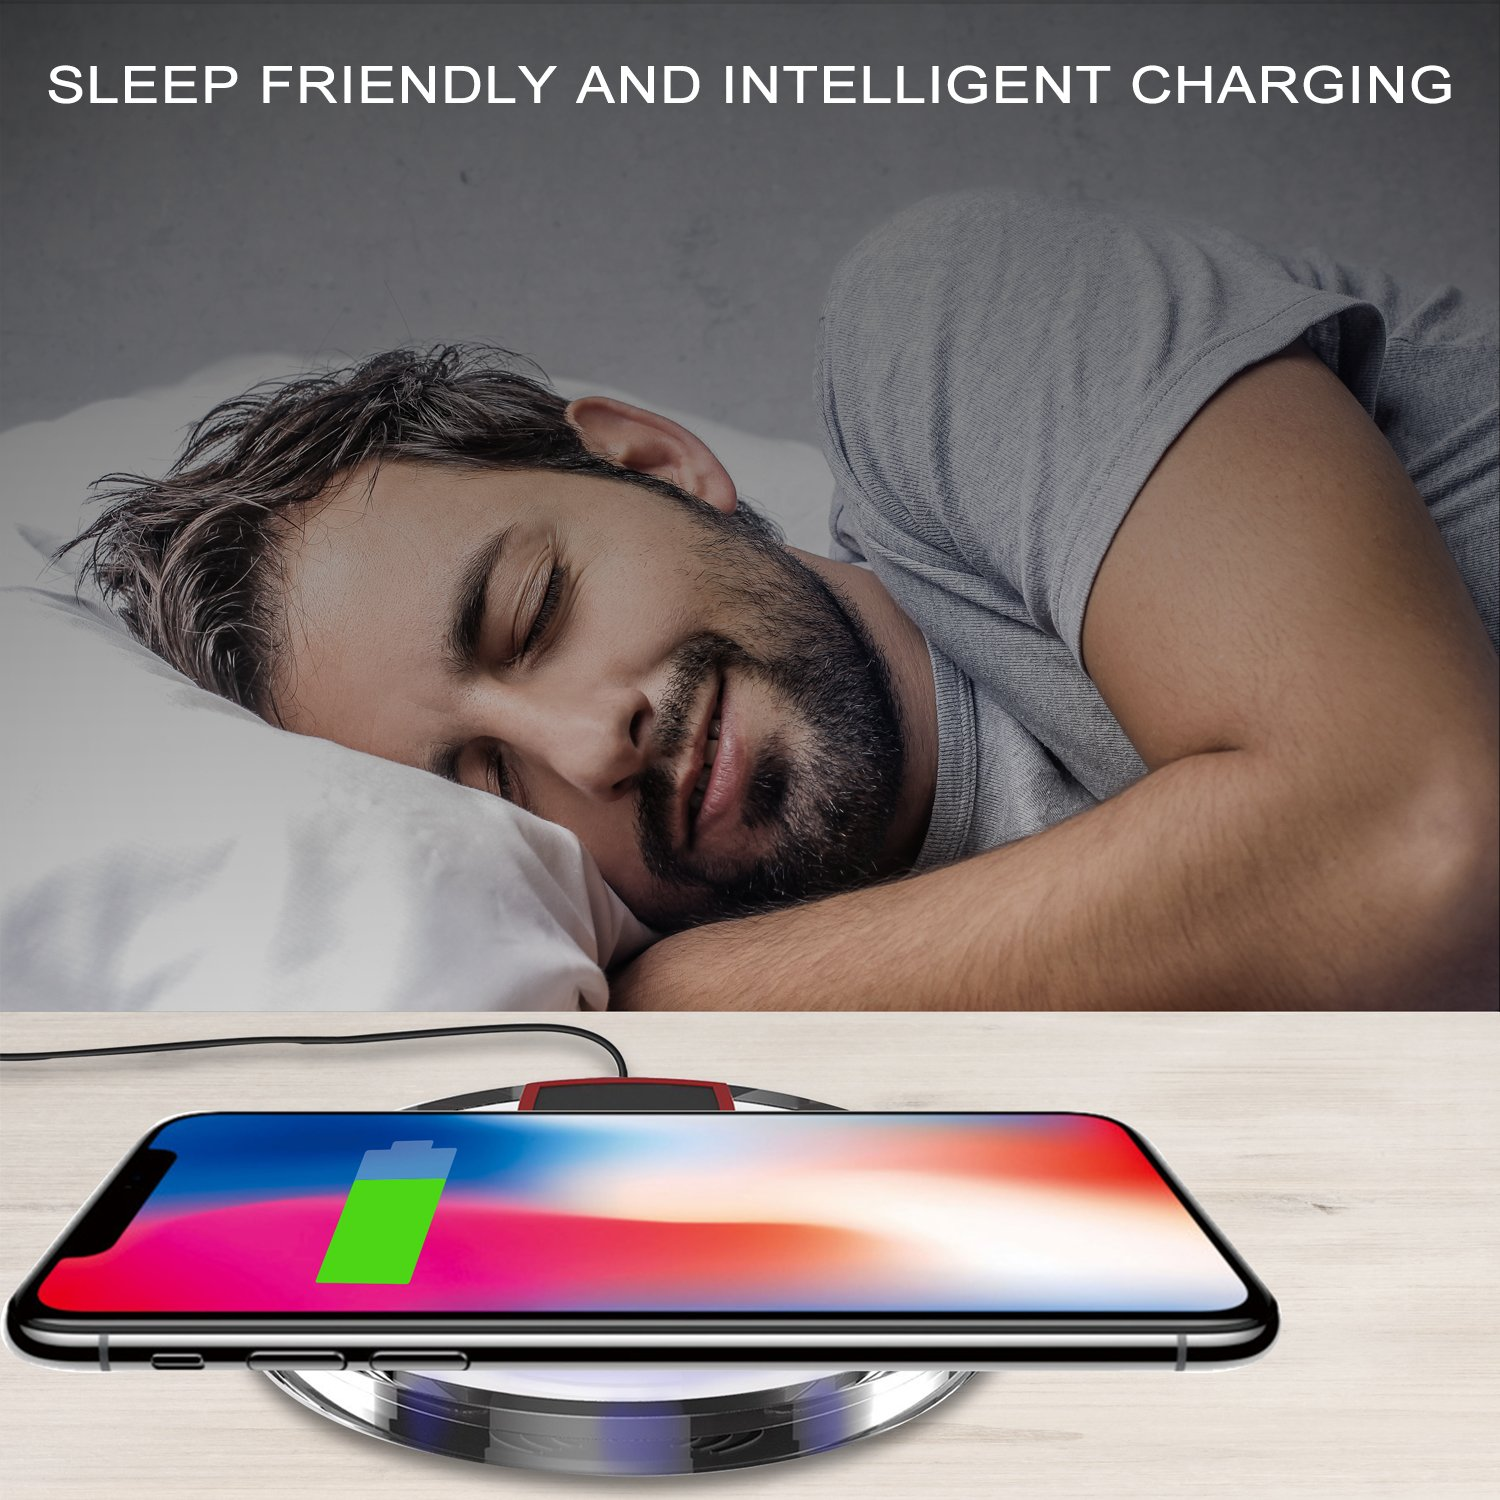 Wireless Charger, Wewdigi Wireless Charging Ultra Slim Wireless Charger for iPhone X / 8 / 8 Plus, Sleep-friendly with Anti-Slip Rubber NO AC Adapter -- Black by Wewdigi (Image #7)